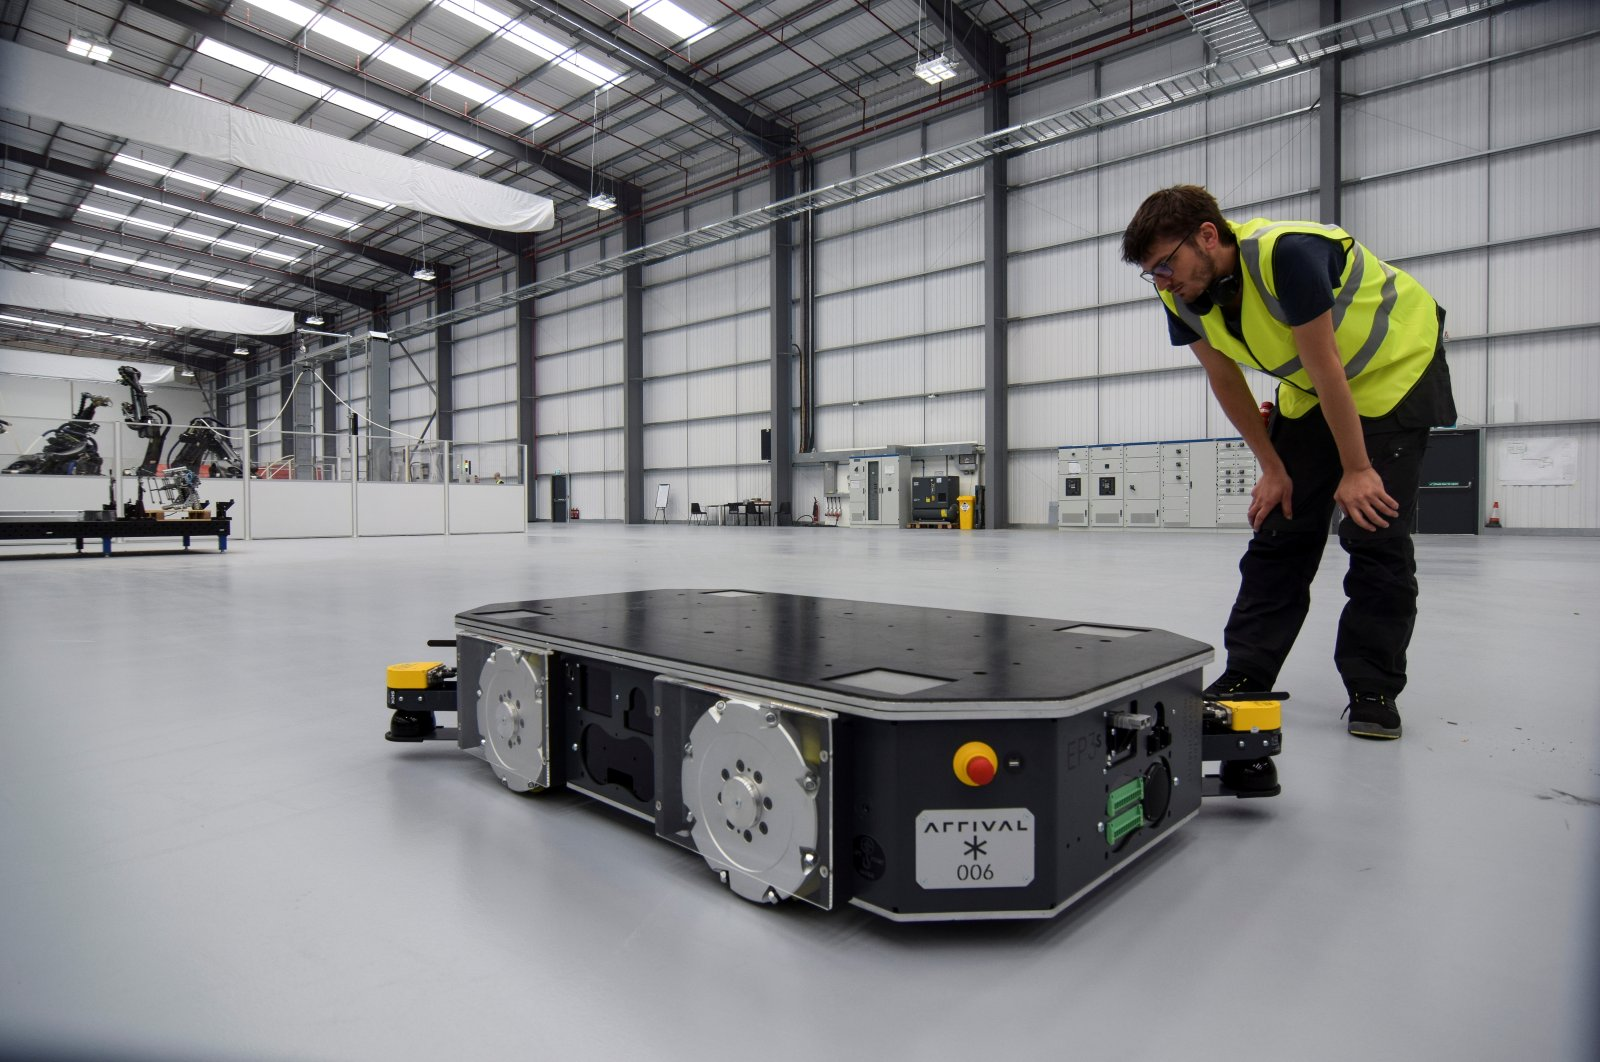 """An engineer at U.K. electric van and bus maker Arrival inspects a specially developed autonomous robot at the startup's low-cost """"microfactory"""" in Bicester, Britain, Aug. 3, 2021. (Reuters Photo)"""